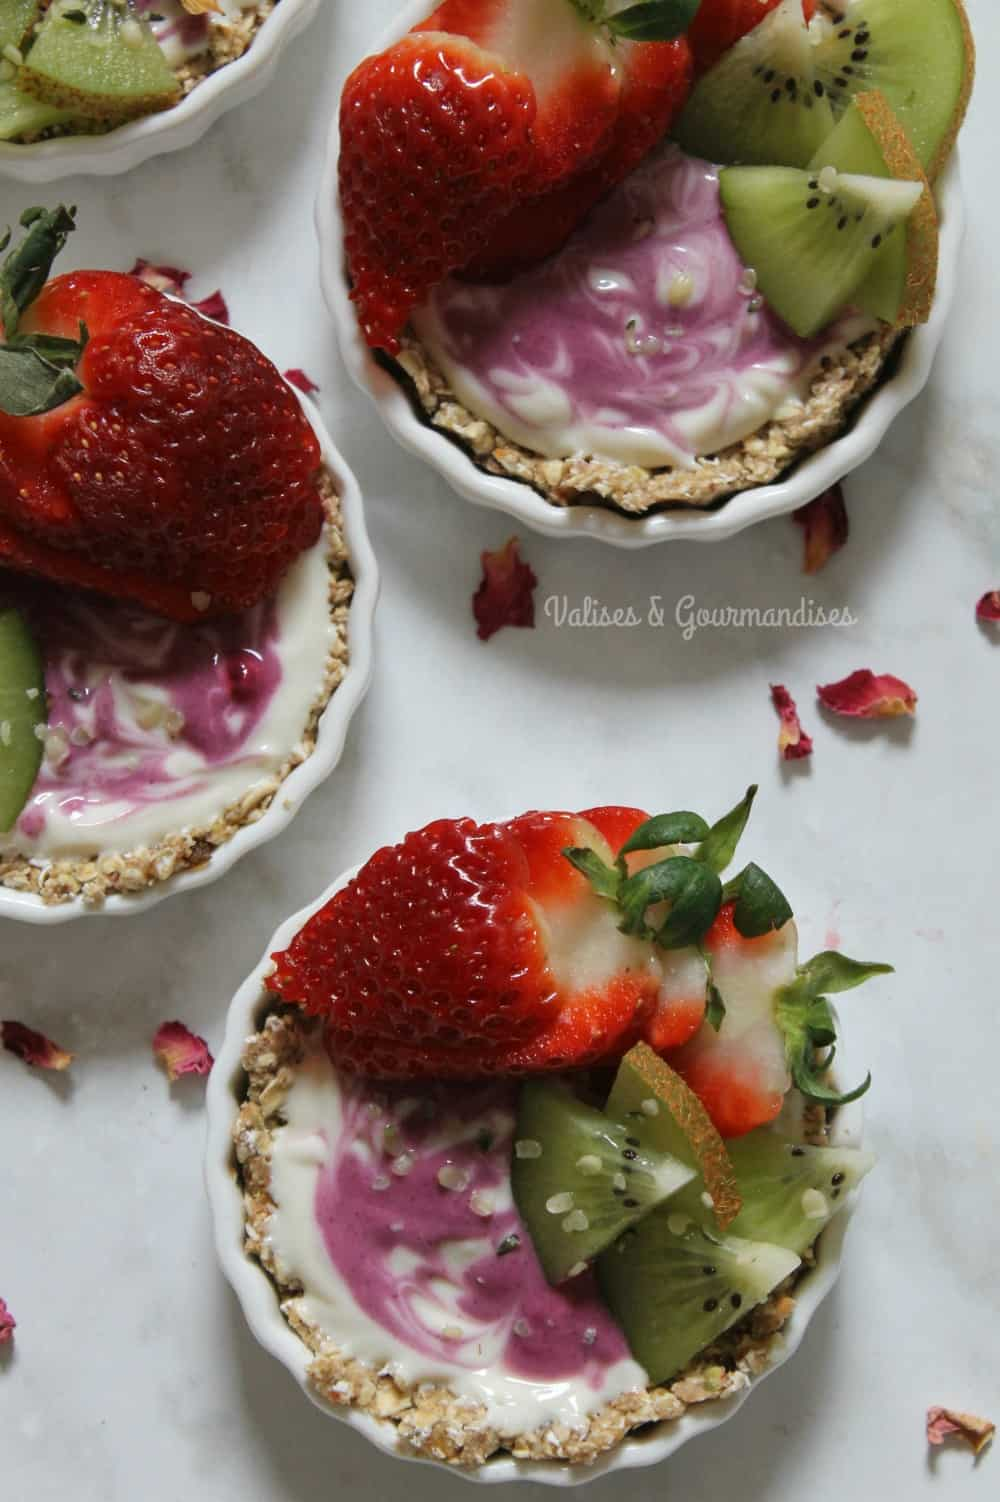 These yogurt and granola tartlets are perfect for breakfast - Valises & Gourmandises